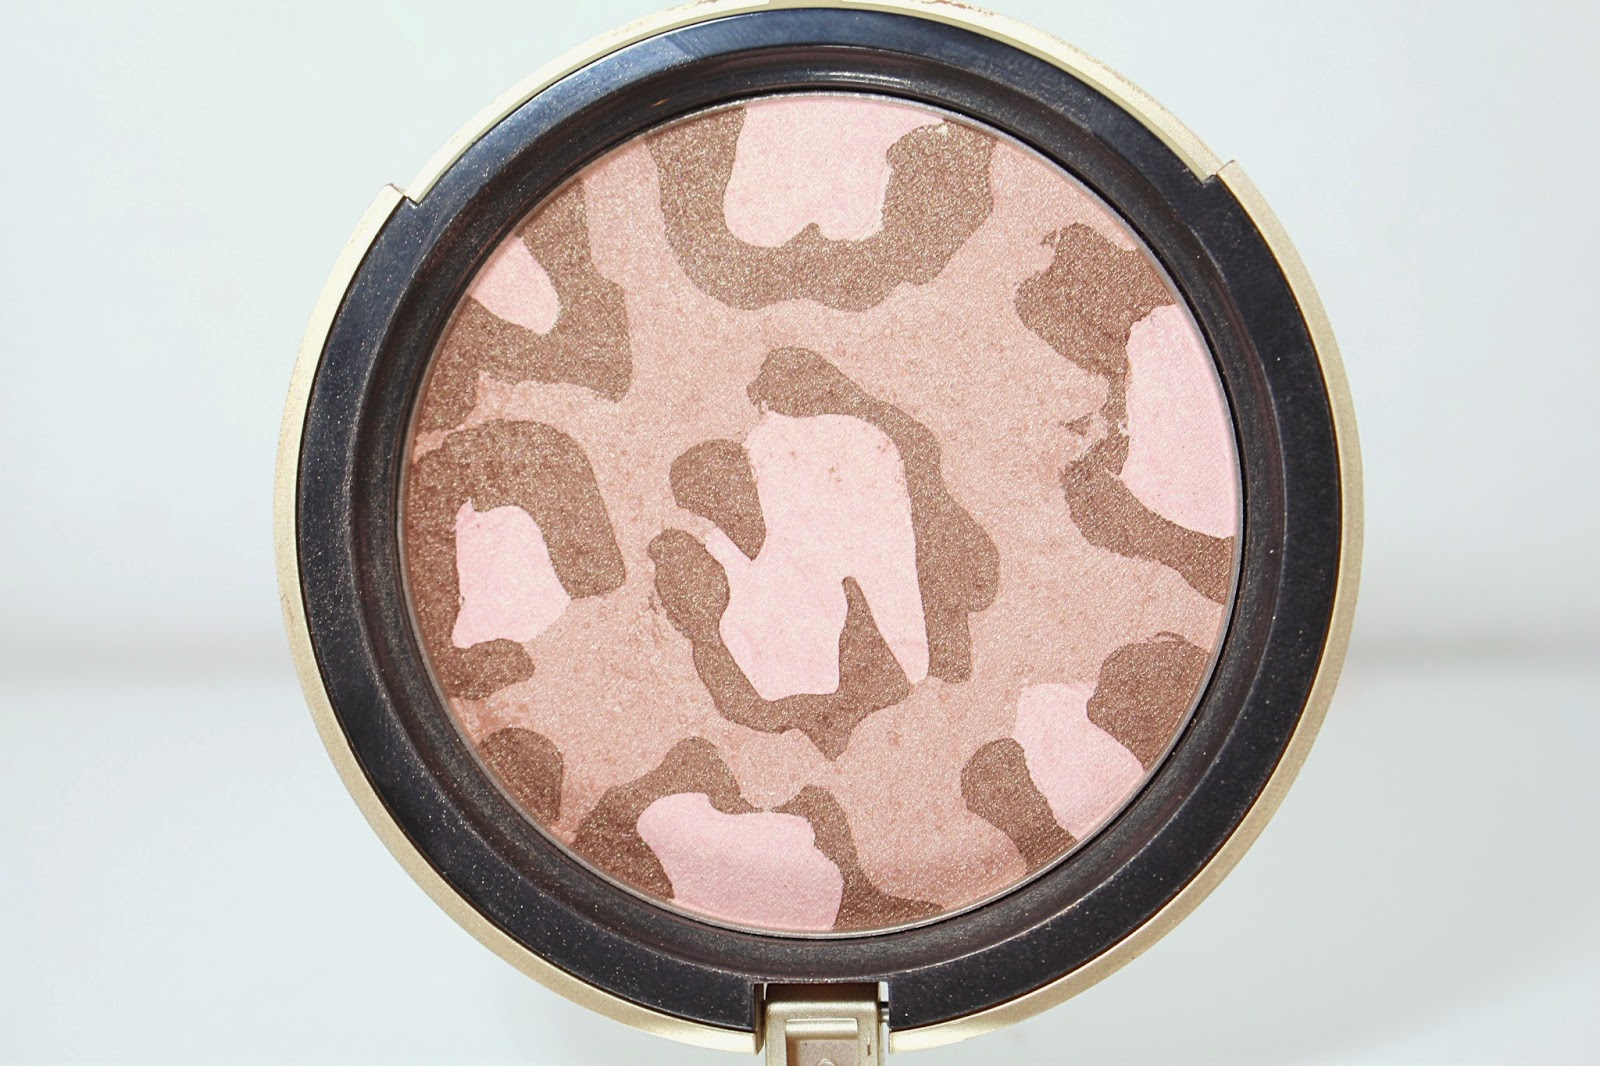 http://www.beautybylou.com/2014/10/pink-leopard-too-faced.html